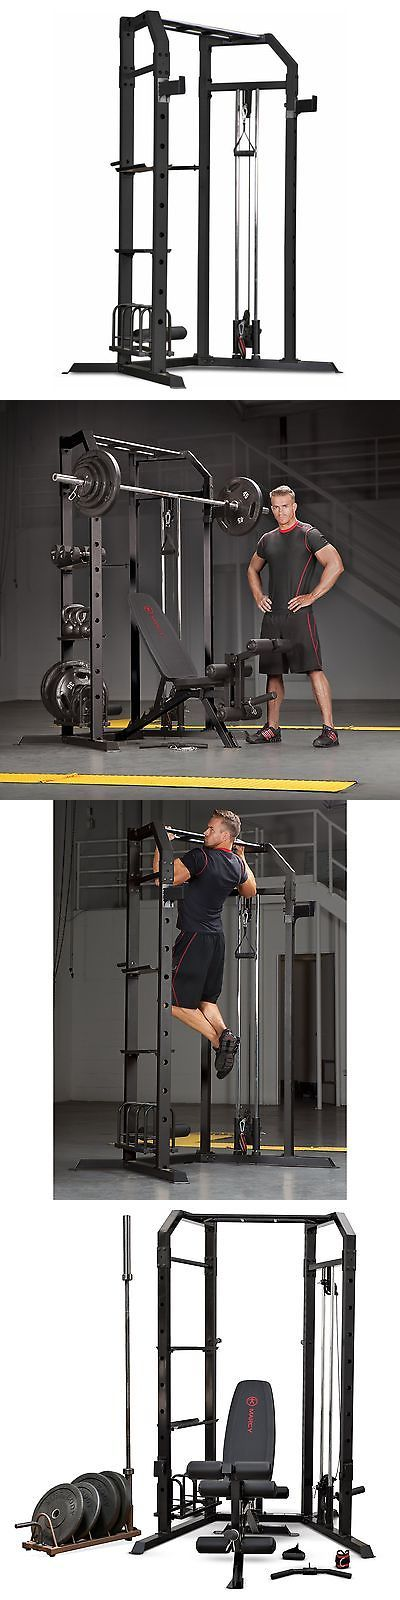 Home Gyms 158923: Marcy Olympic Strength Cage, Black/Gray -> BUY IT NOW ONLY: $349.99 on eBay!